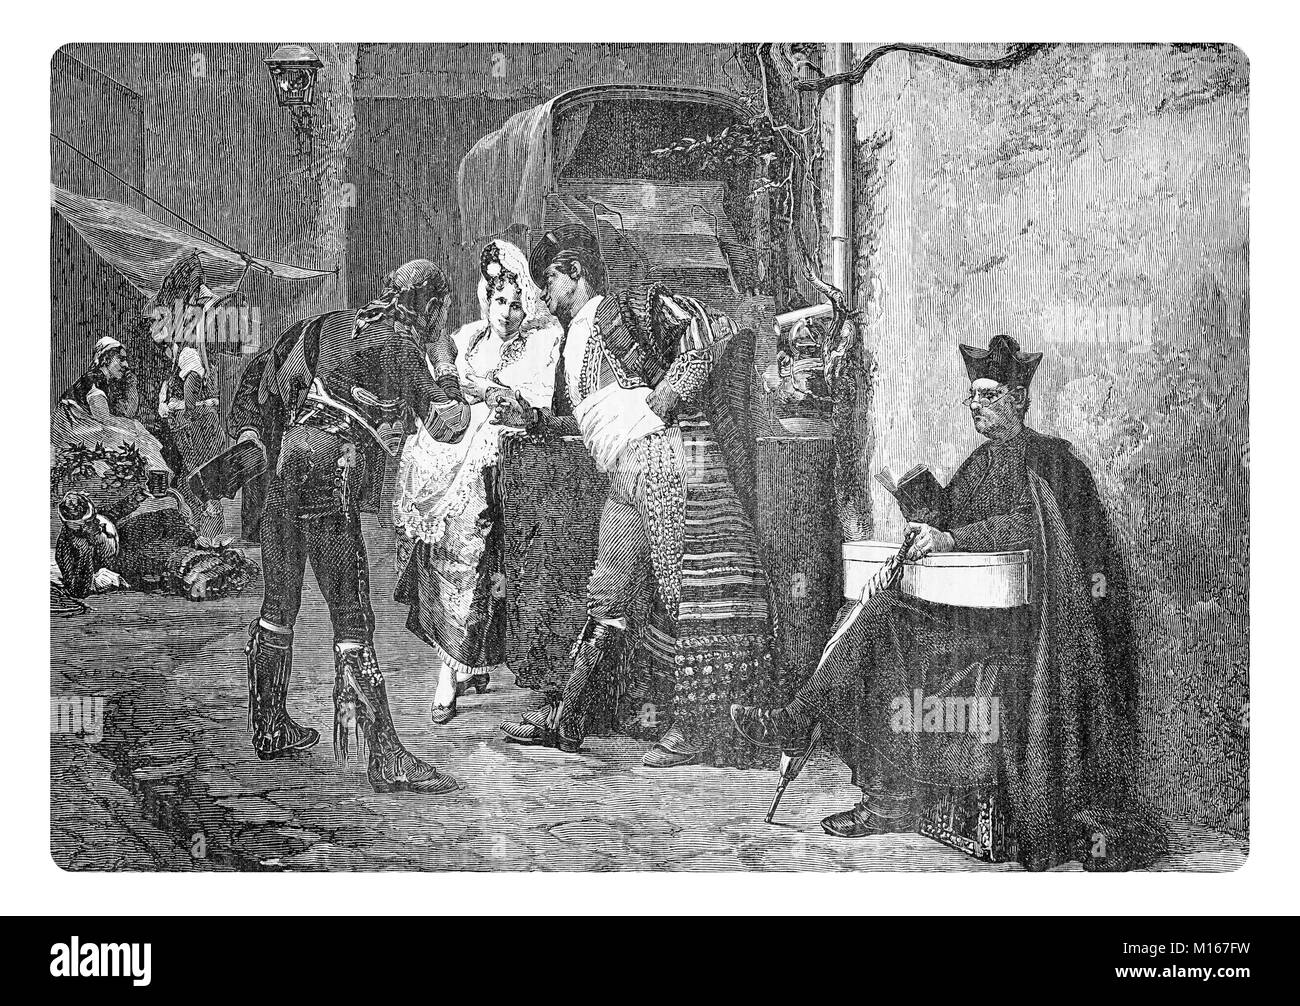 Vintage engraving, travellers at the post station waiting for the coach in a Spanish village - Stock Image